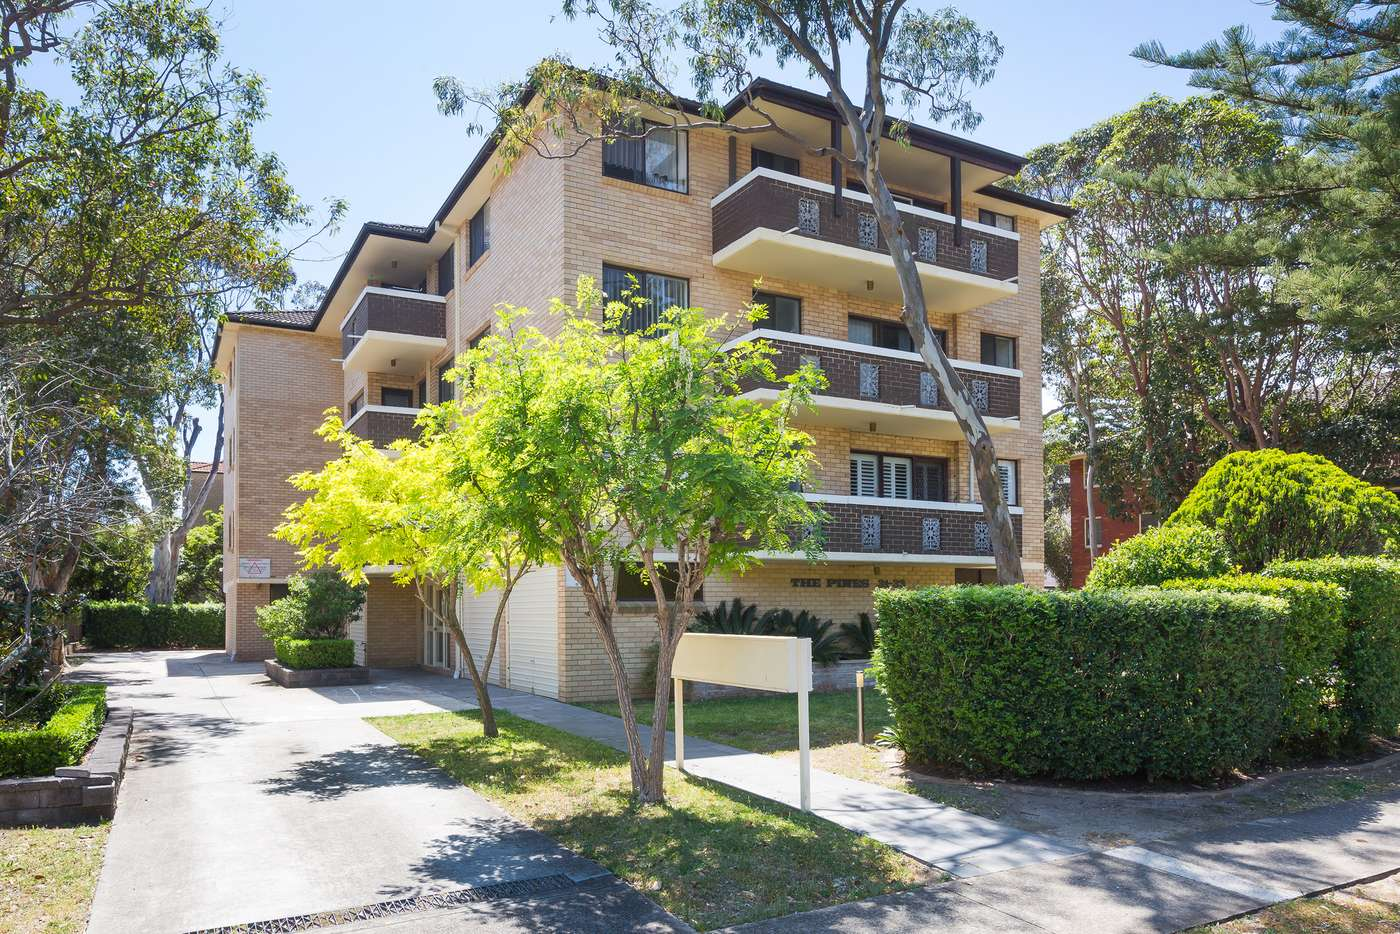 Main view of Homely apartment listing, 10/31 Girrilang Road, Cronulla NSW 2230